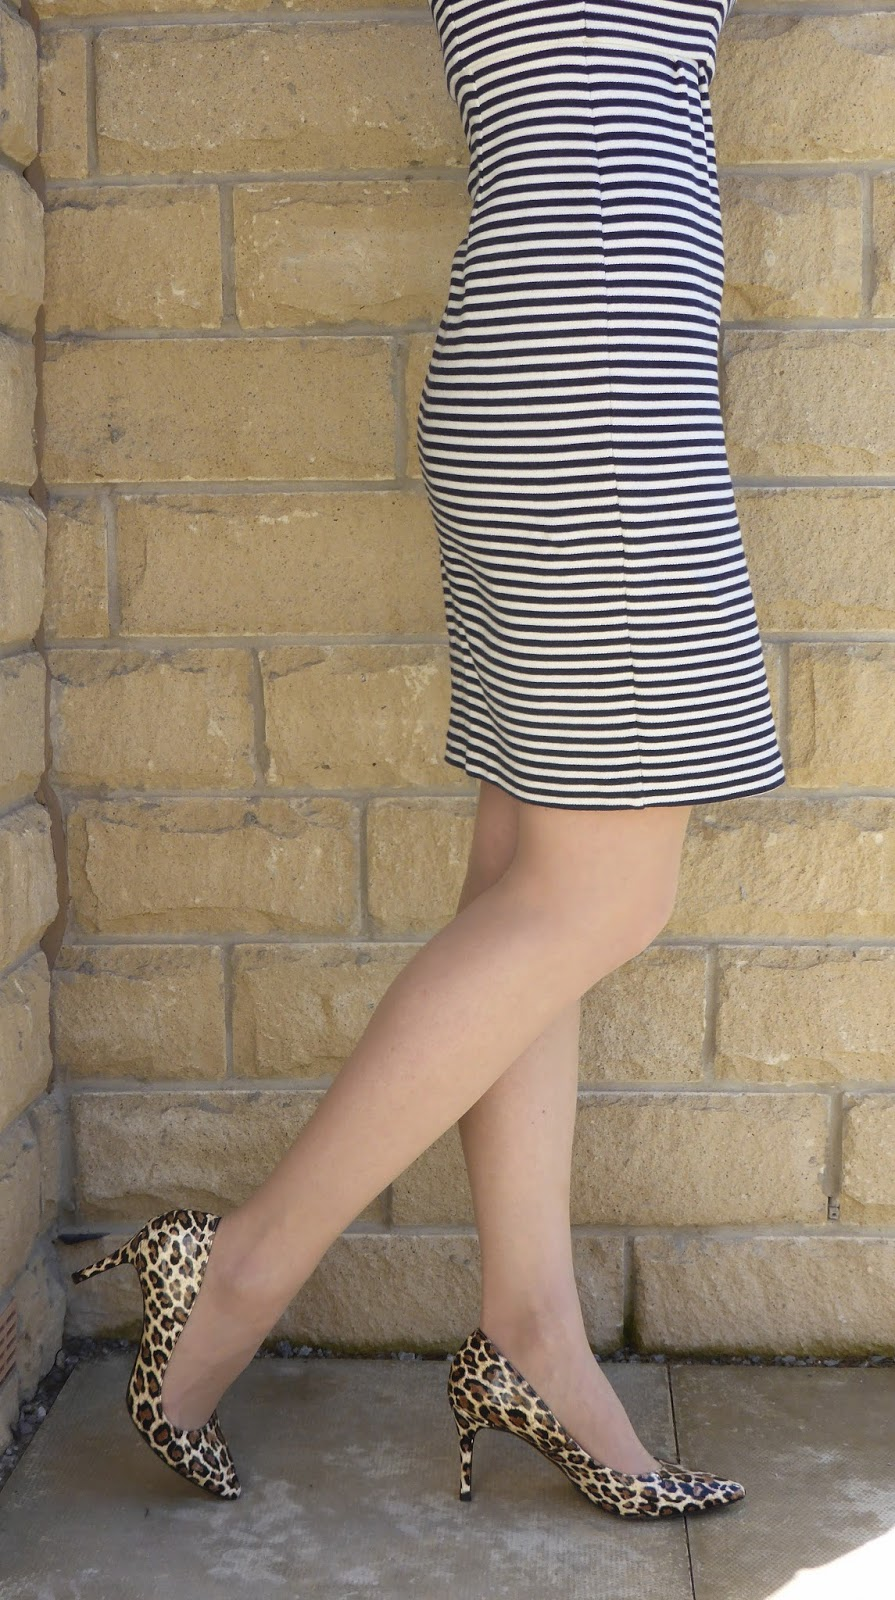 b88116cdb9f5 Outfit: Sixties Style Striped Shift with Leopard Shoes - What Lizzy ...